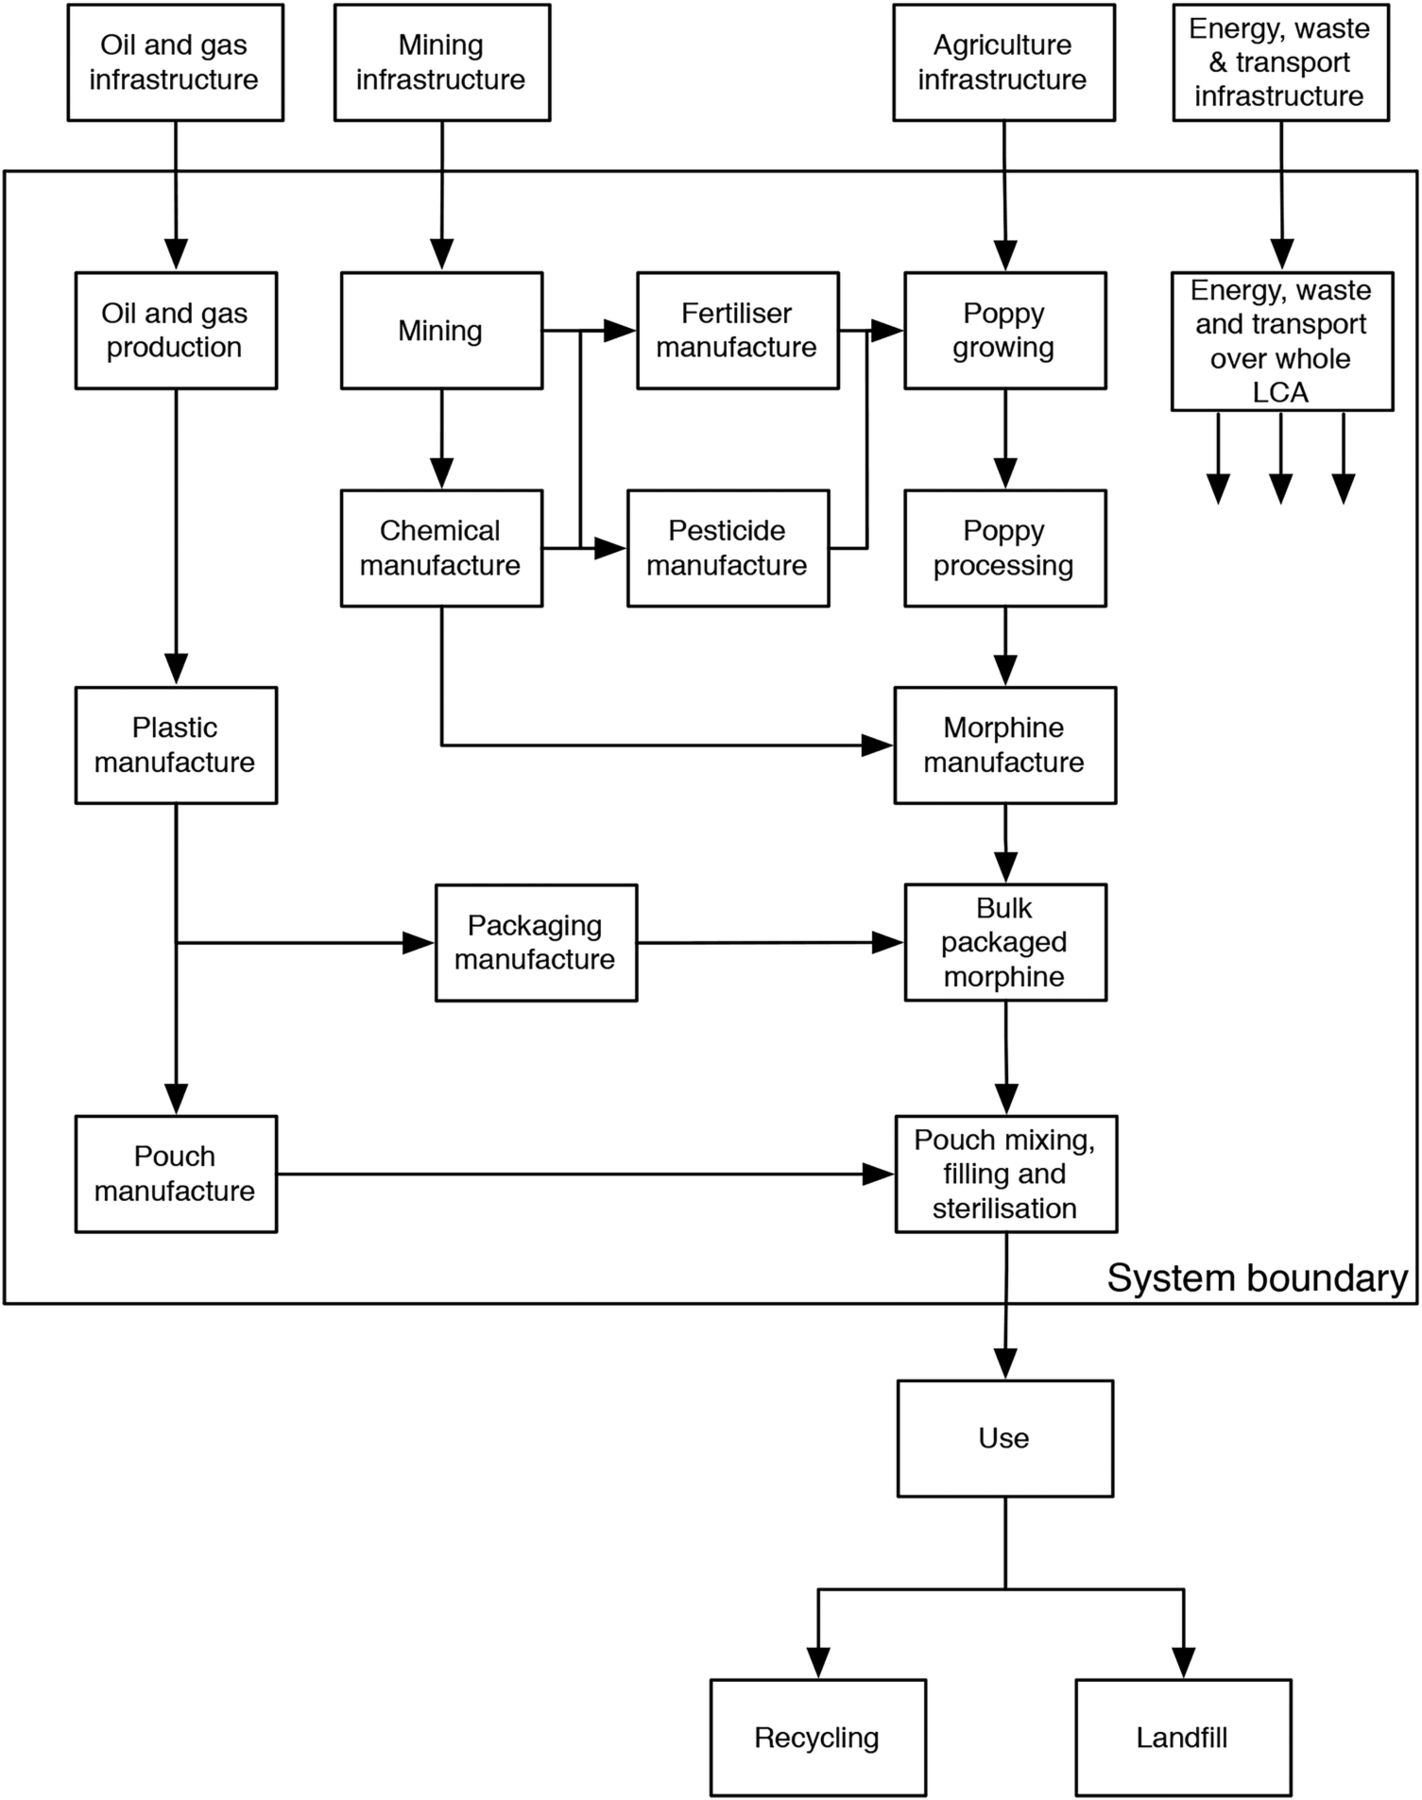 The Environmental footprint of morphine: a life cycle assessment